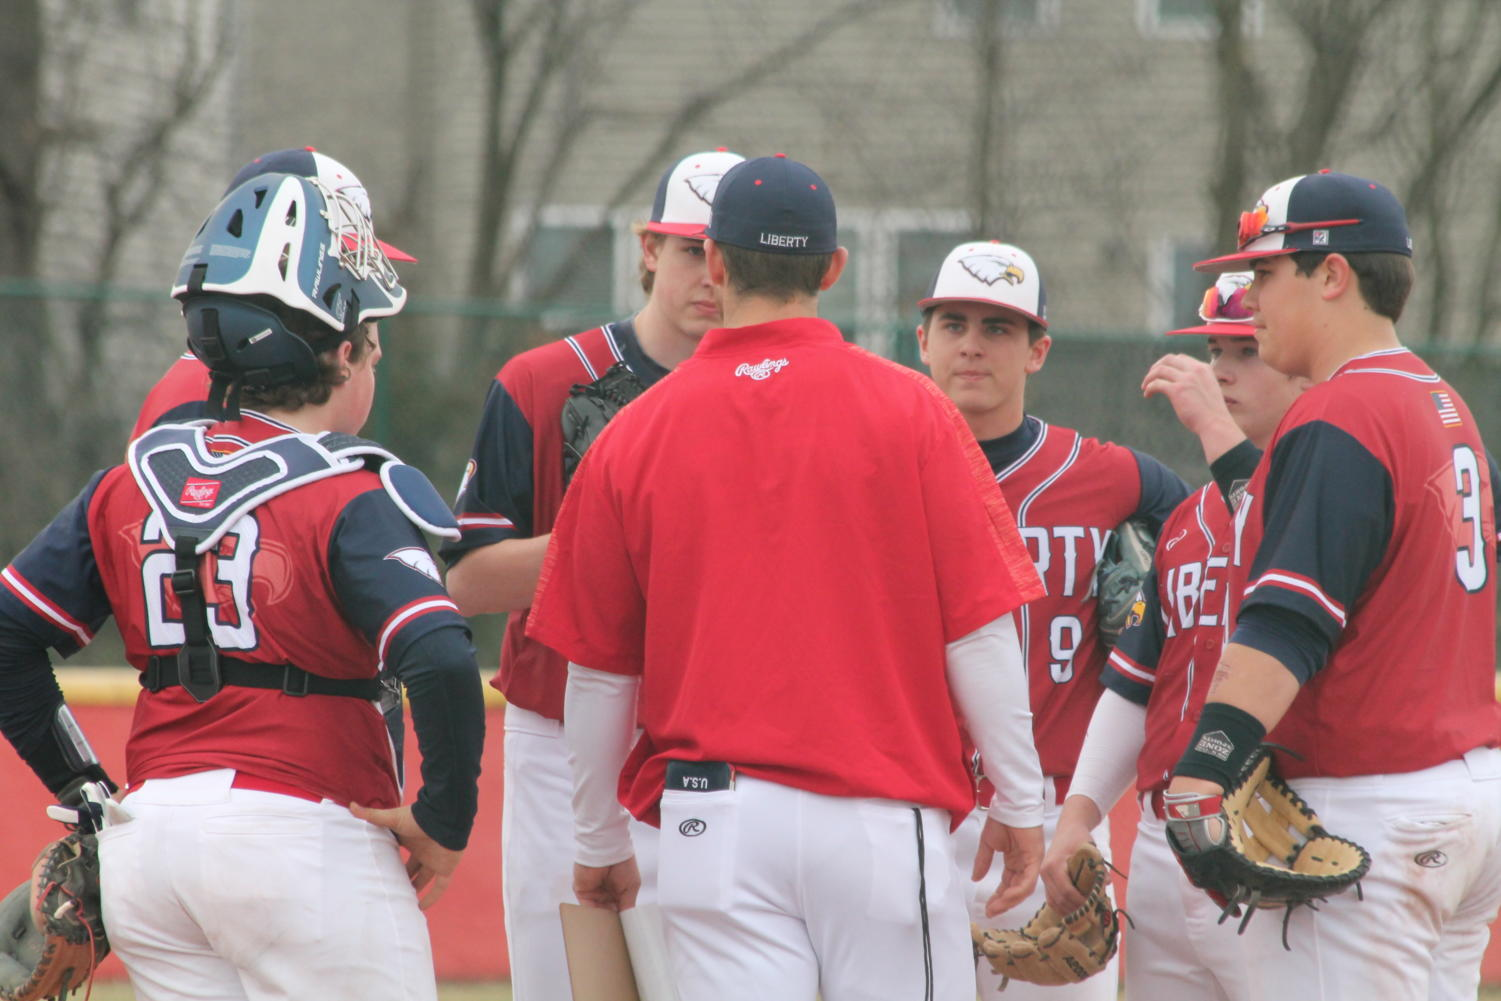 Coach Clements talks to the team at the mound in a game against Hannibal. The Eagles won 13-3 on March 19.